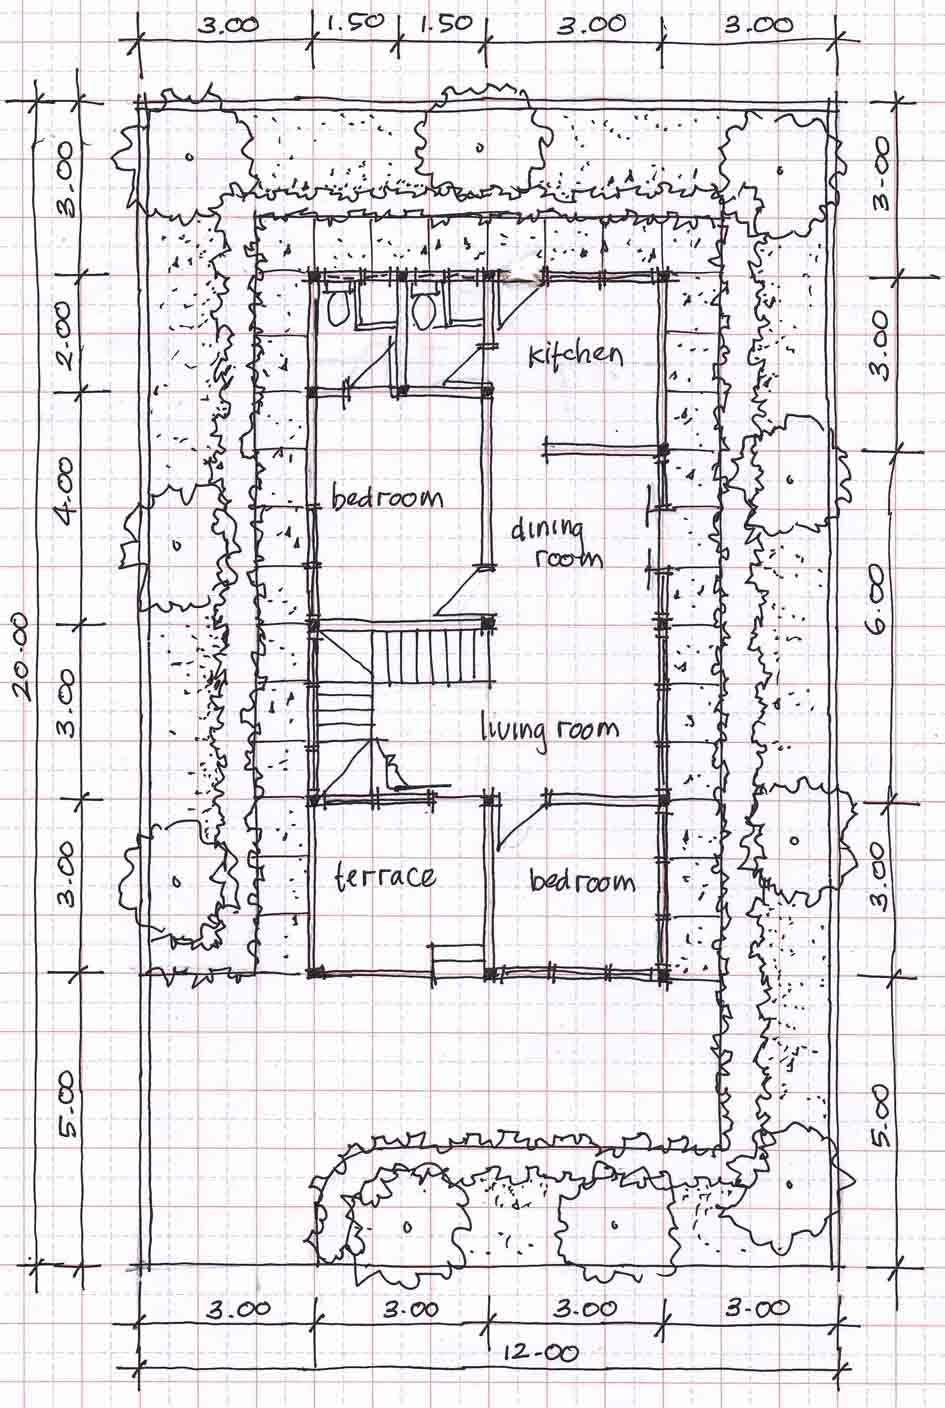 Small two story house plans 12mx20m bedroom furniture ideas for Small two story house plans